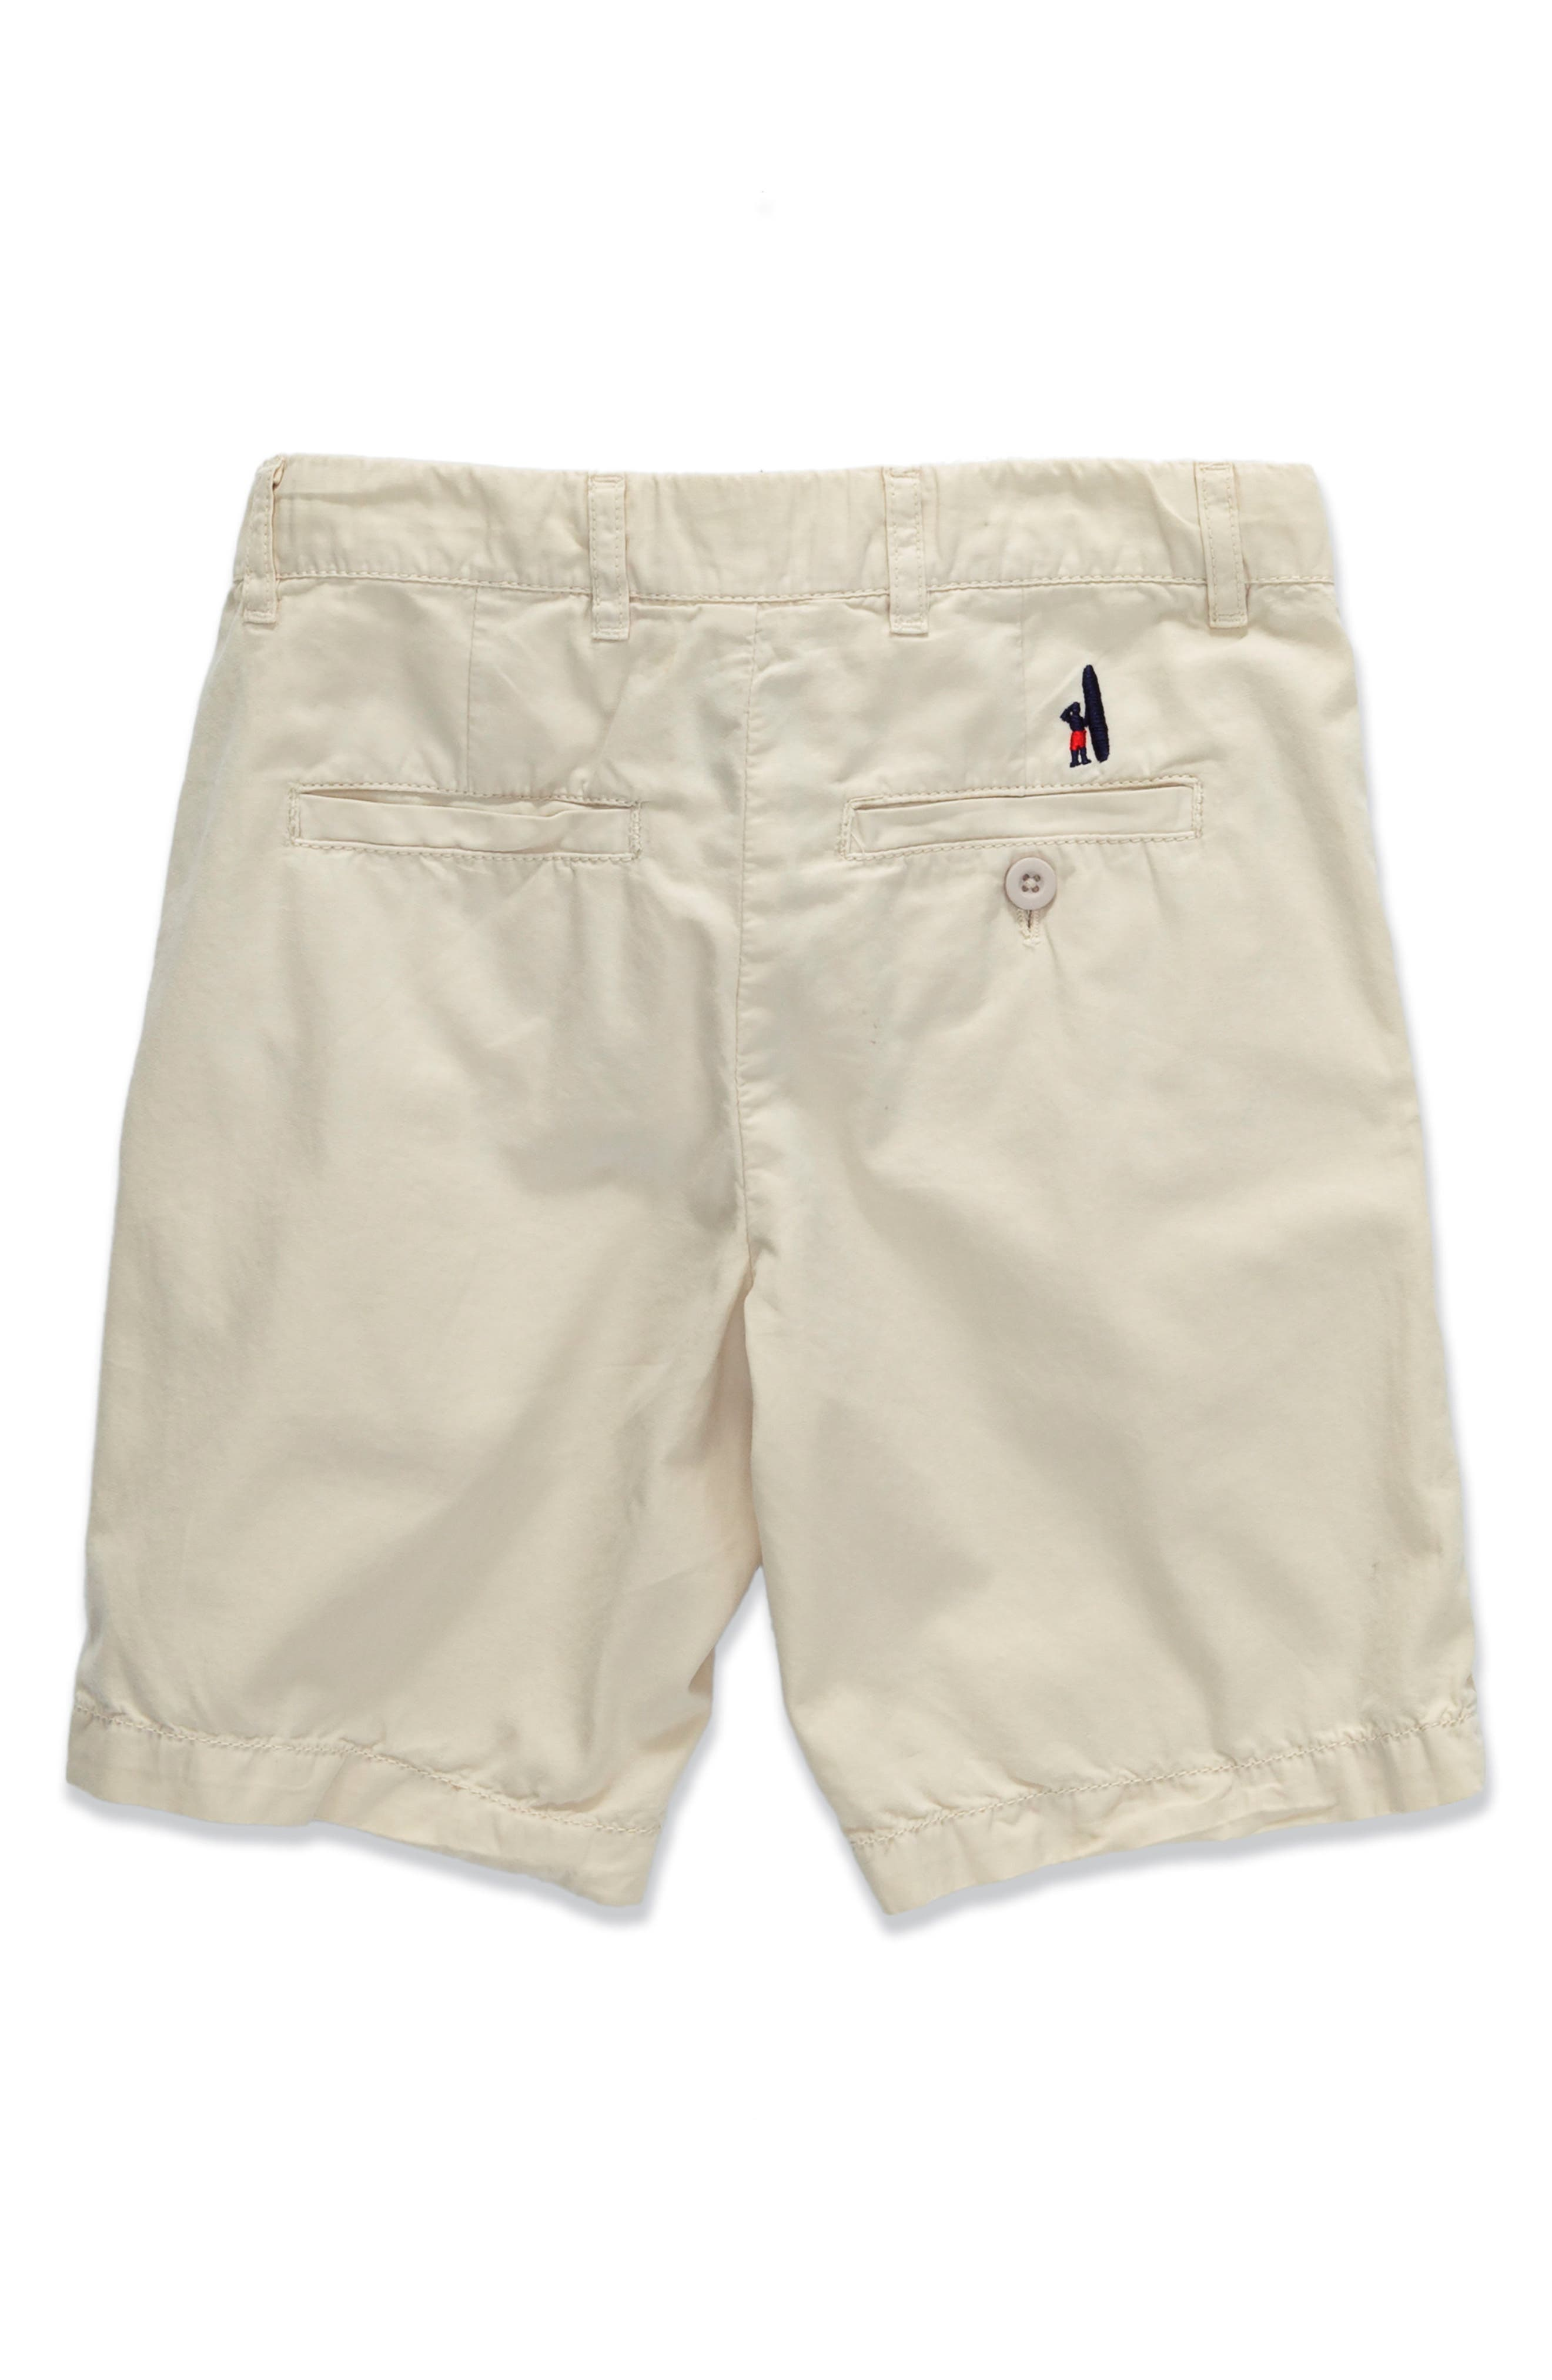 Derby Poplin Shorts,                             Main thumbnail 2, color,